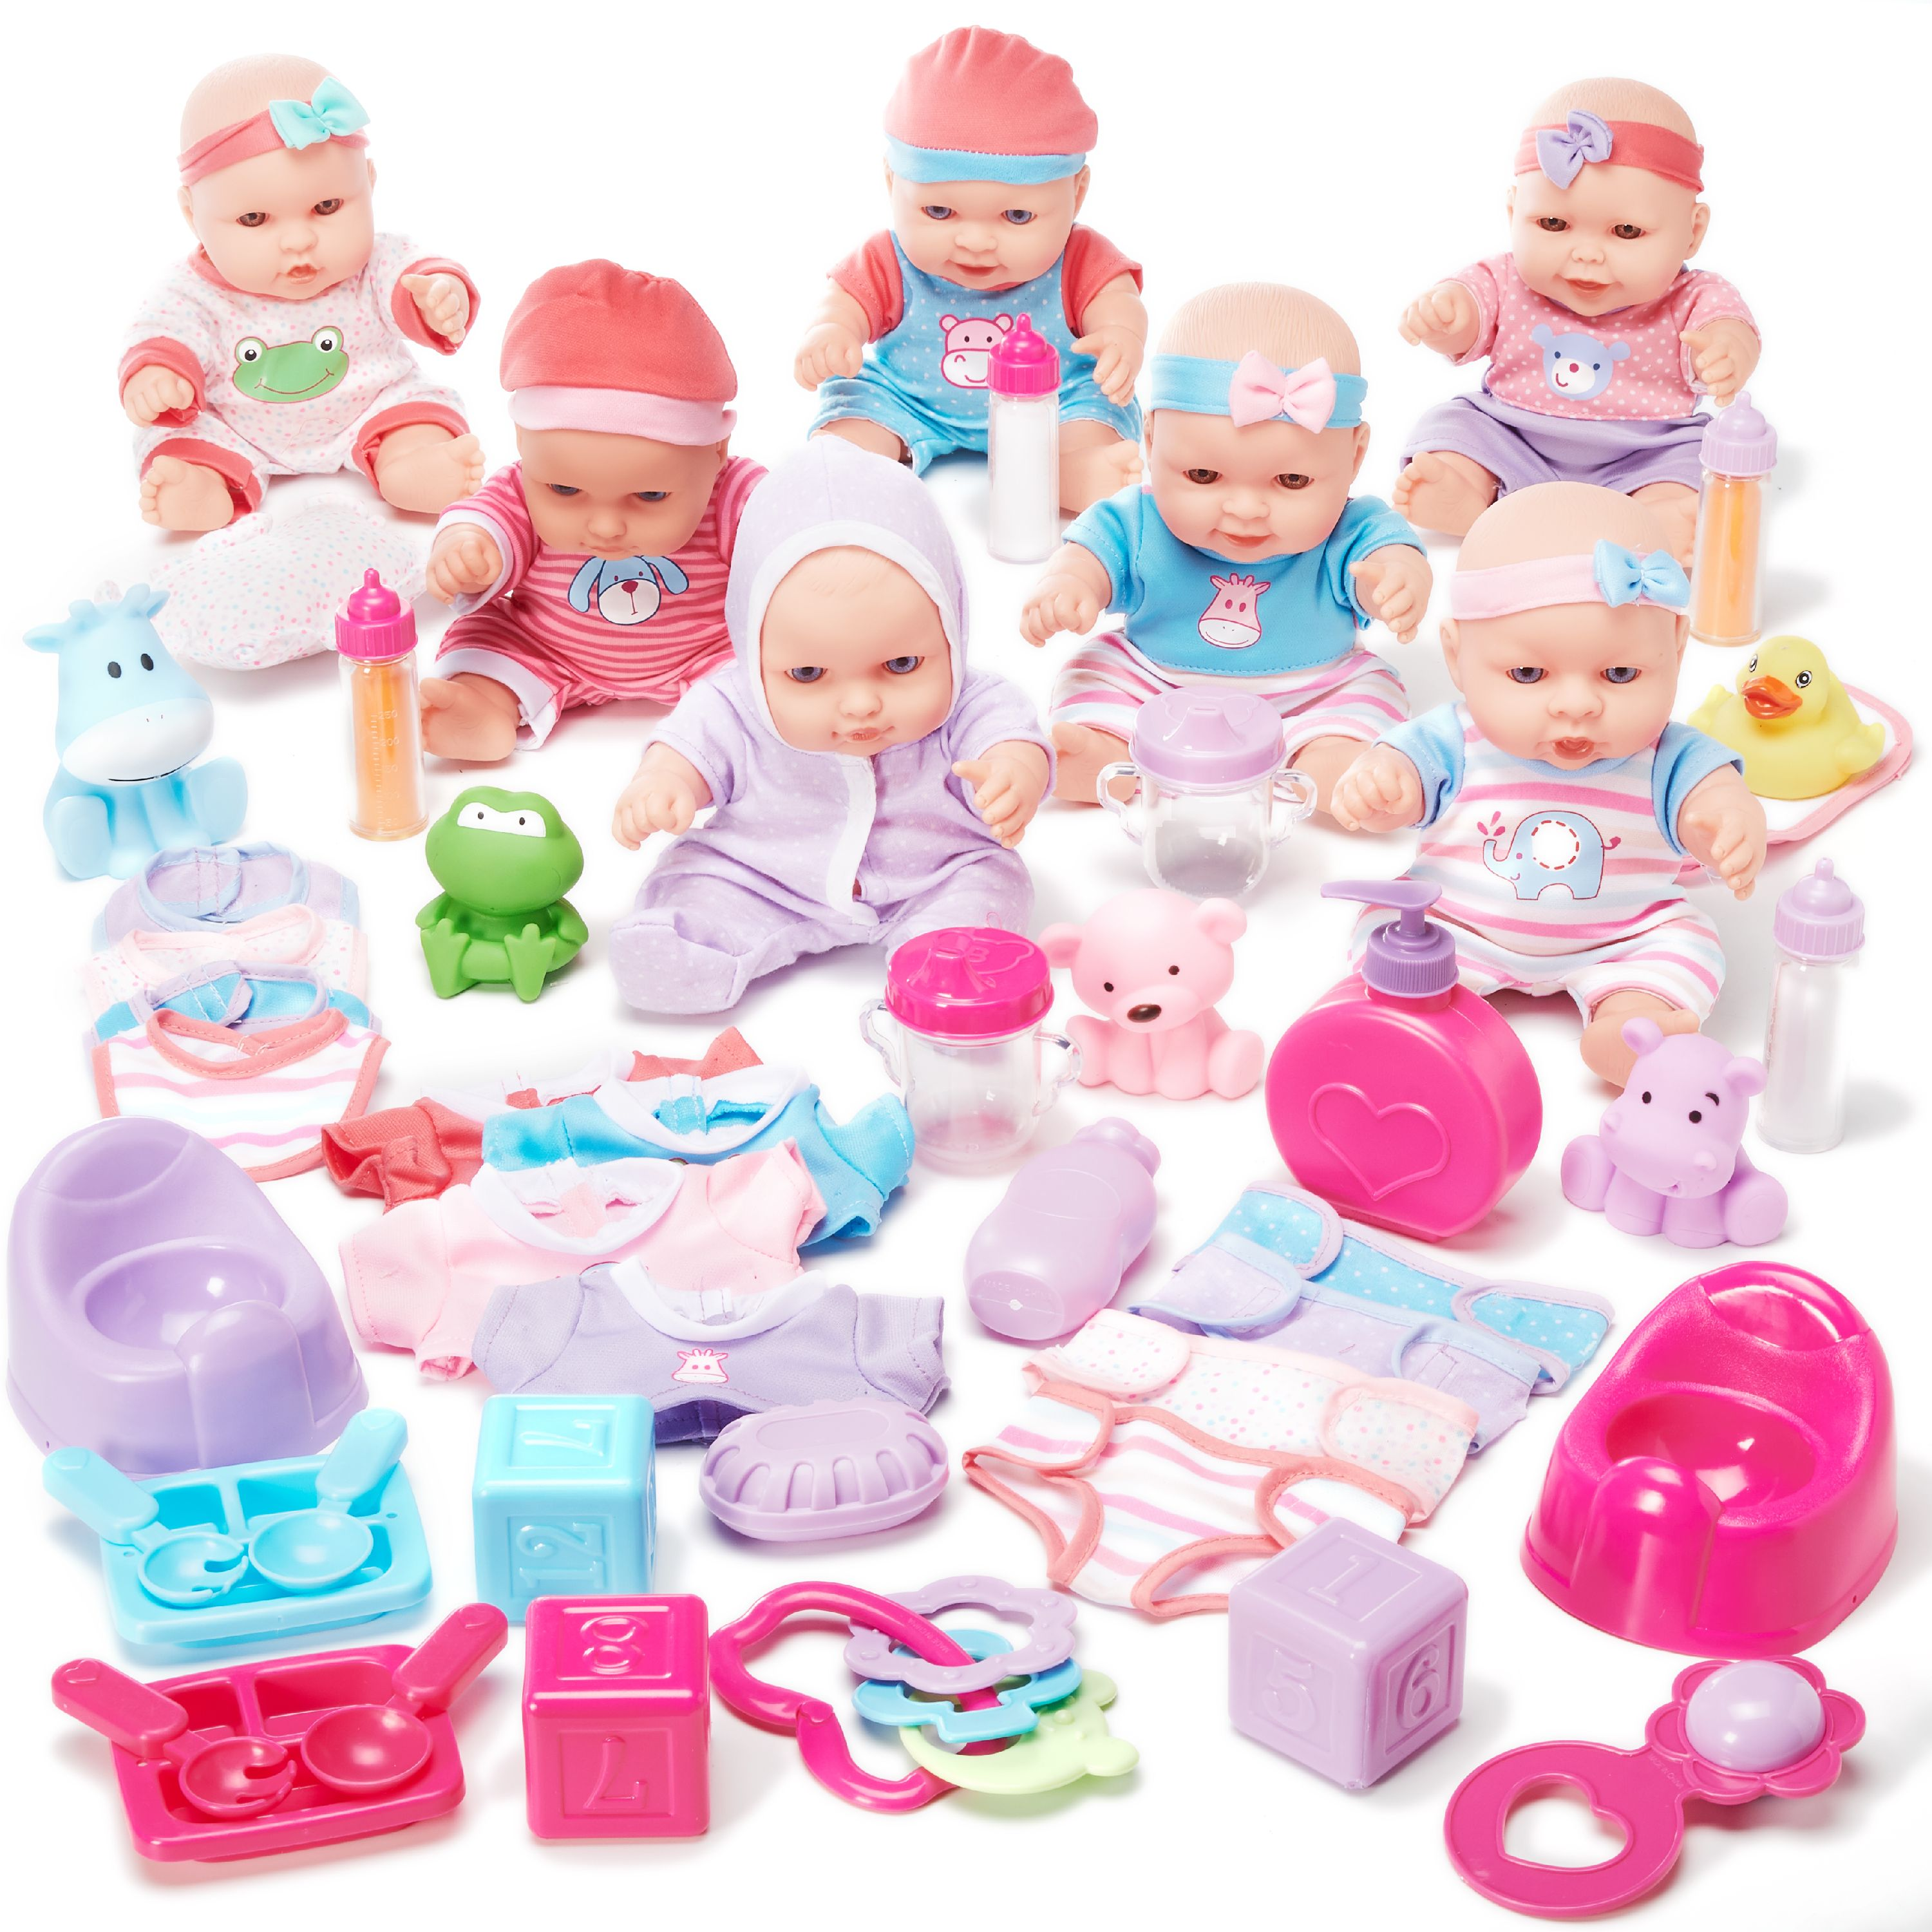 Kid Connection 7-pc 9 Inches Baby Doll Set